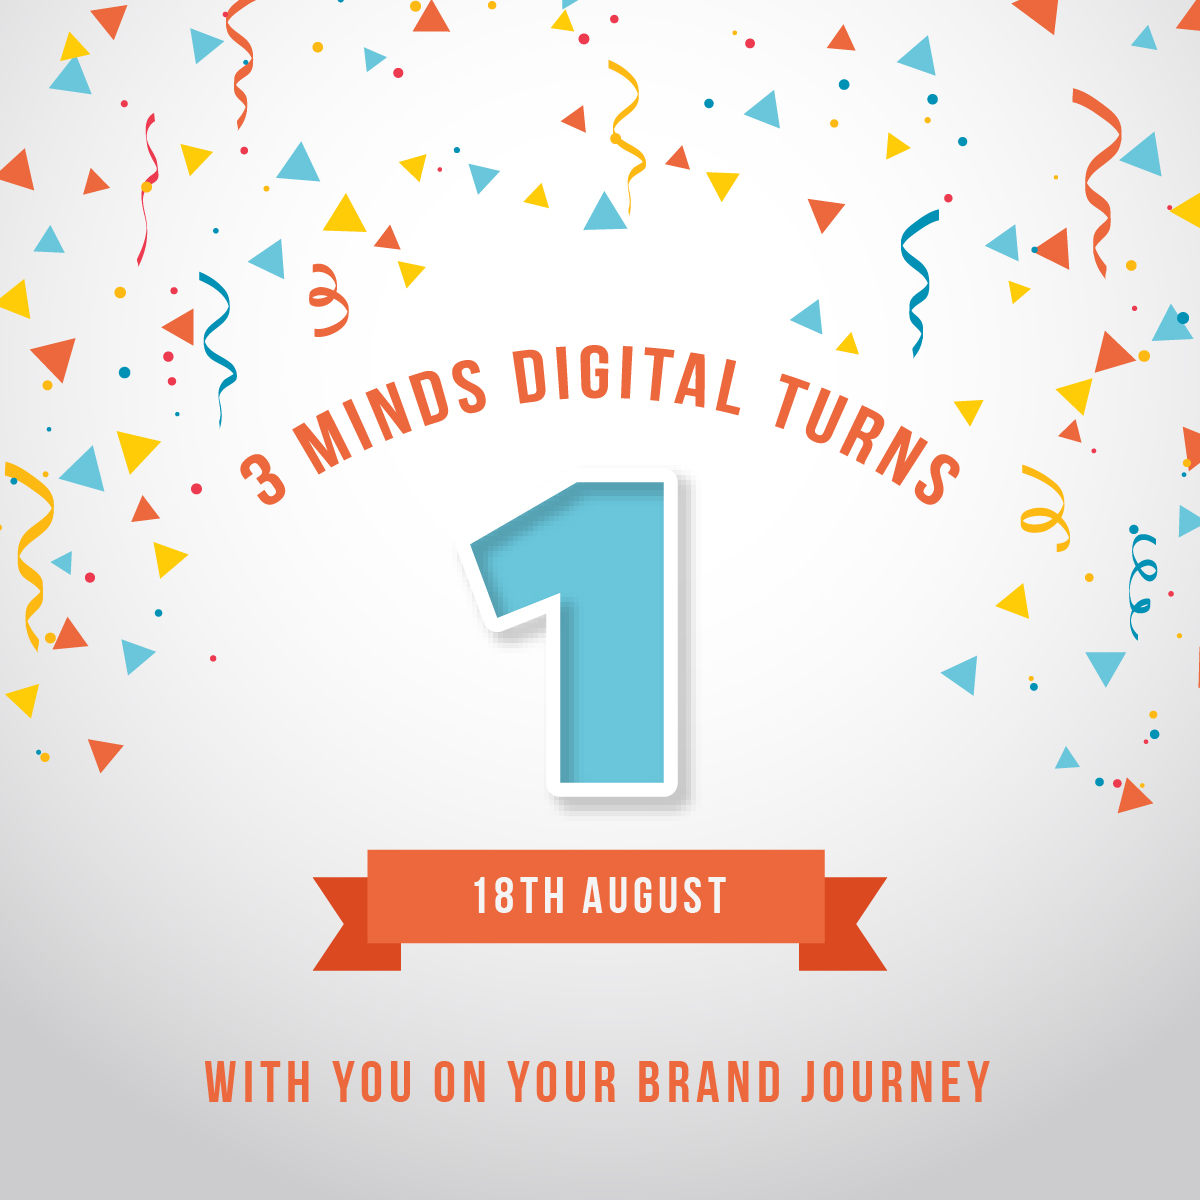 Celebrating the One-Year Anniversary: 3 Minds Digital